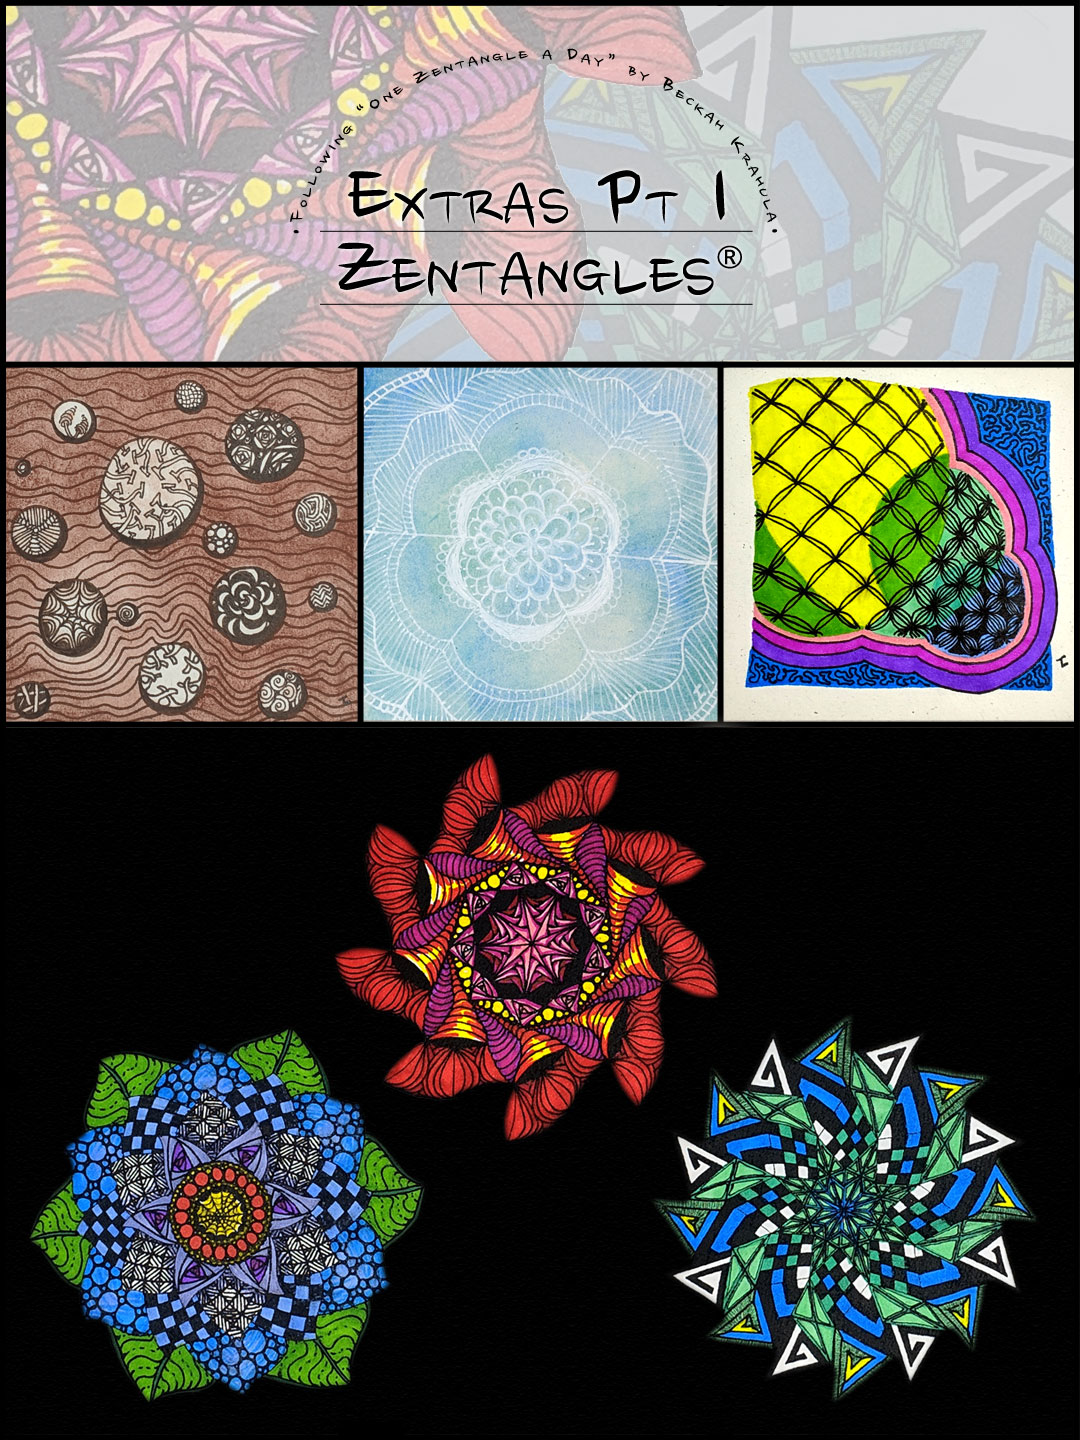 Week 7 Part 1 Zentangles by Hermit Werds for Pinterest